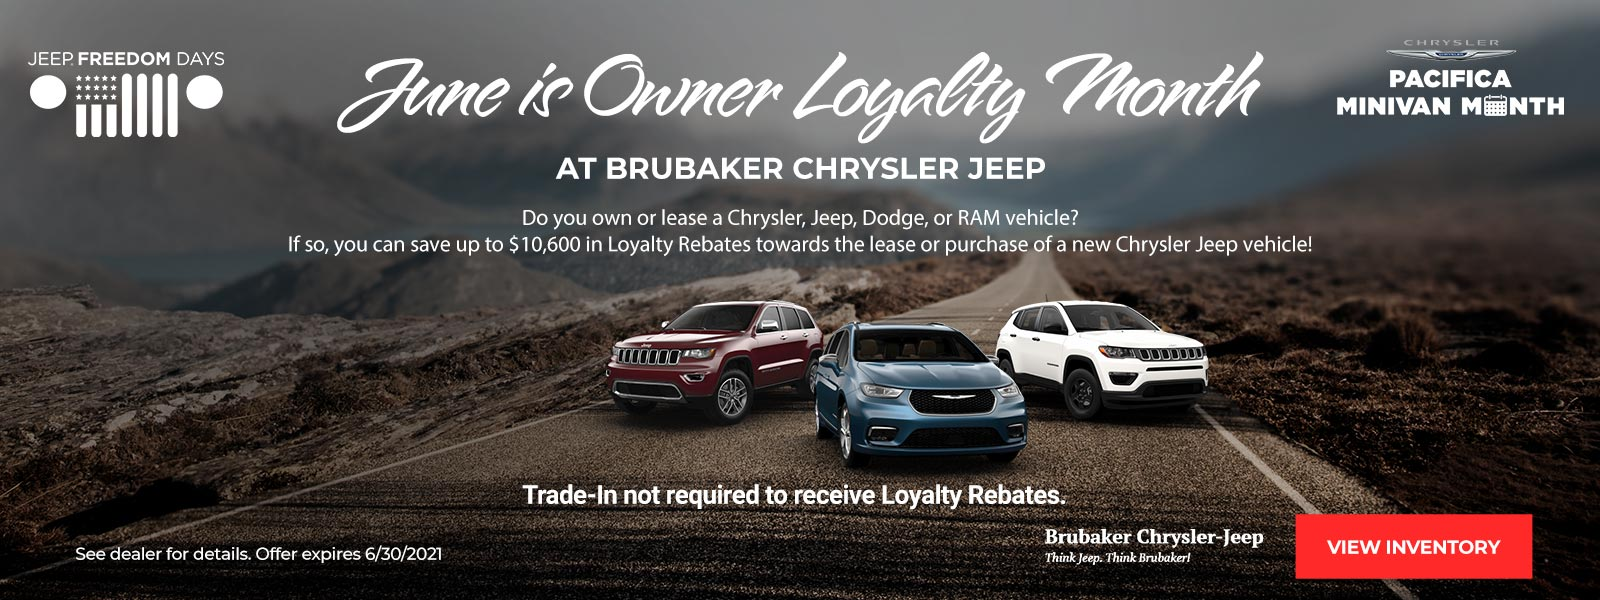 Owner Loyalty Month